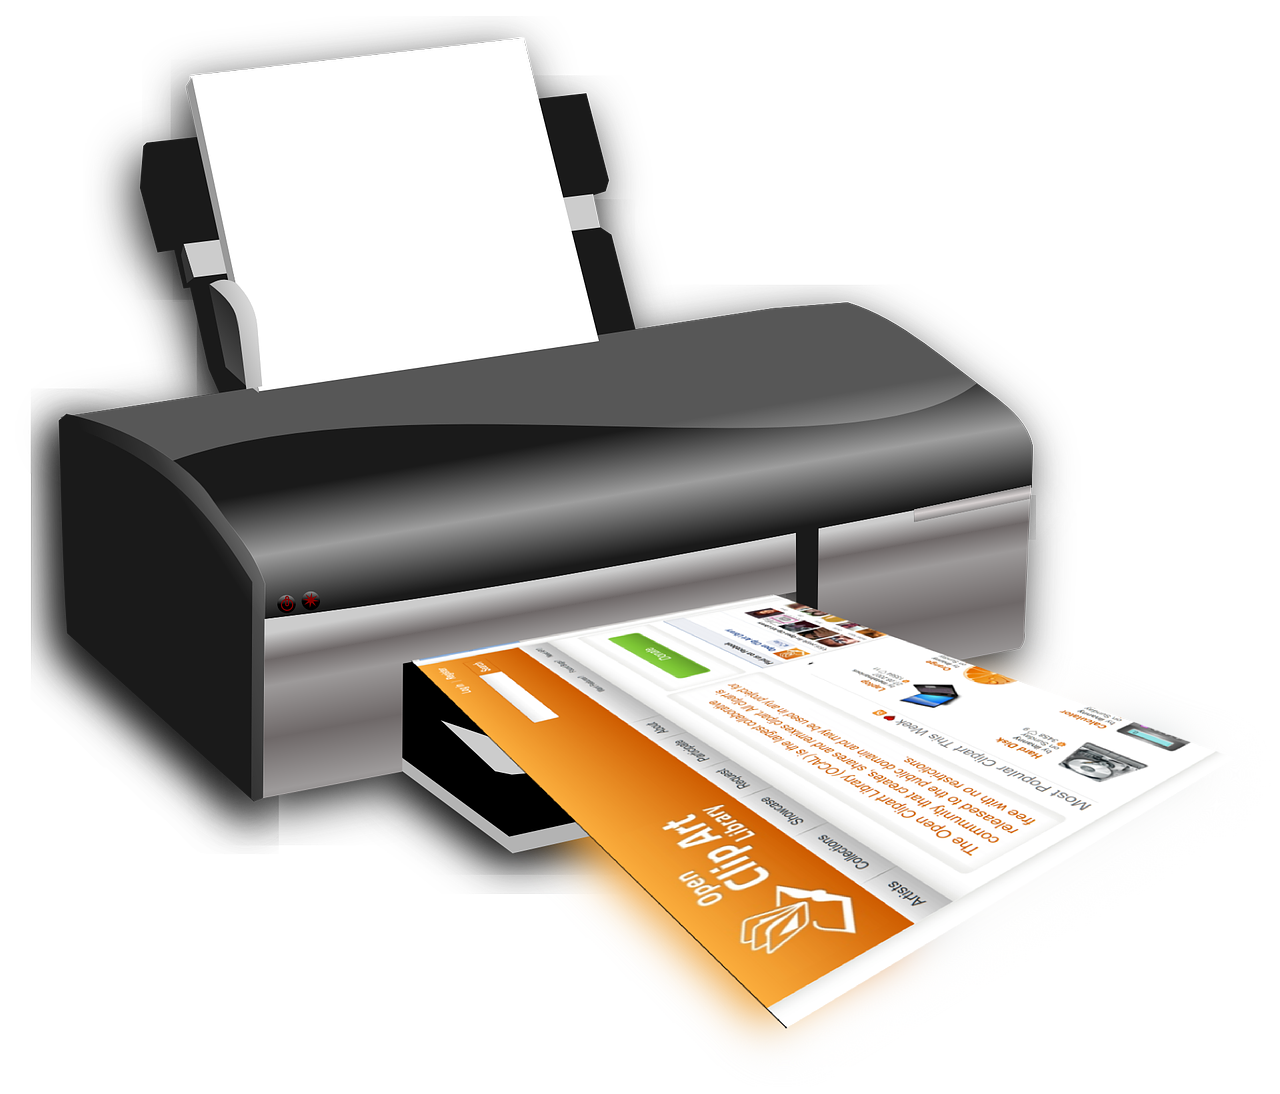 how to print a web page  u2014 the way it looks onscreen